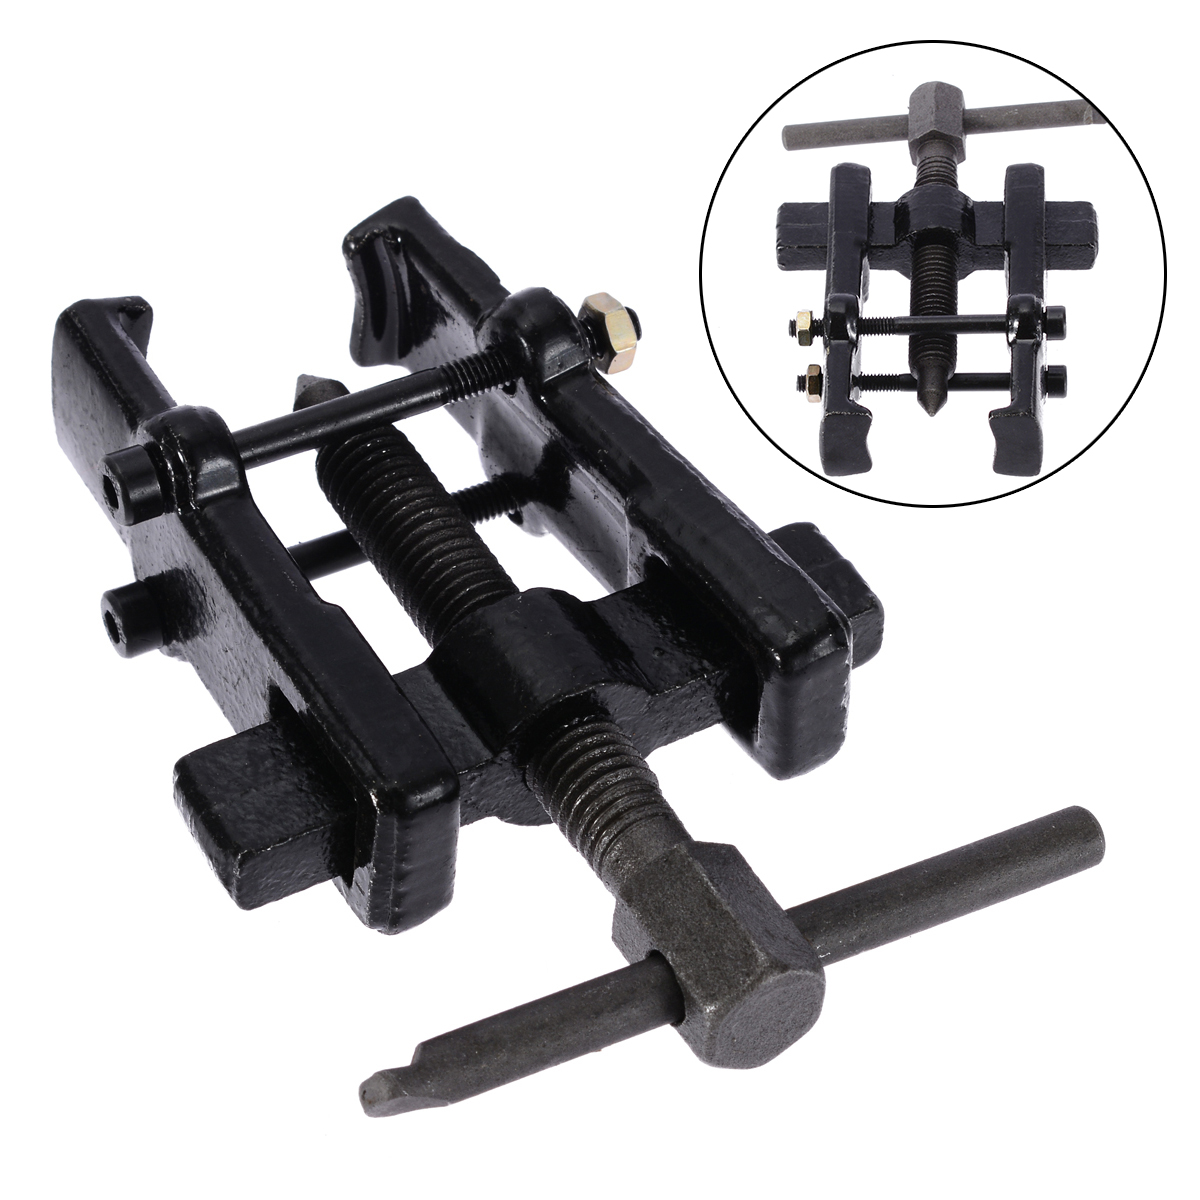 Practical New Two Jaw Gear Pulley Bearing Puller 2 4 6 Small Leg Large Mechanics Black Repairing Car Tools Kits Hand Tool Sets Power Tool Accessories Back To Search Resultstools